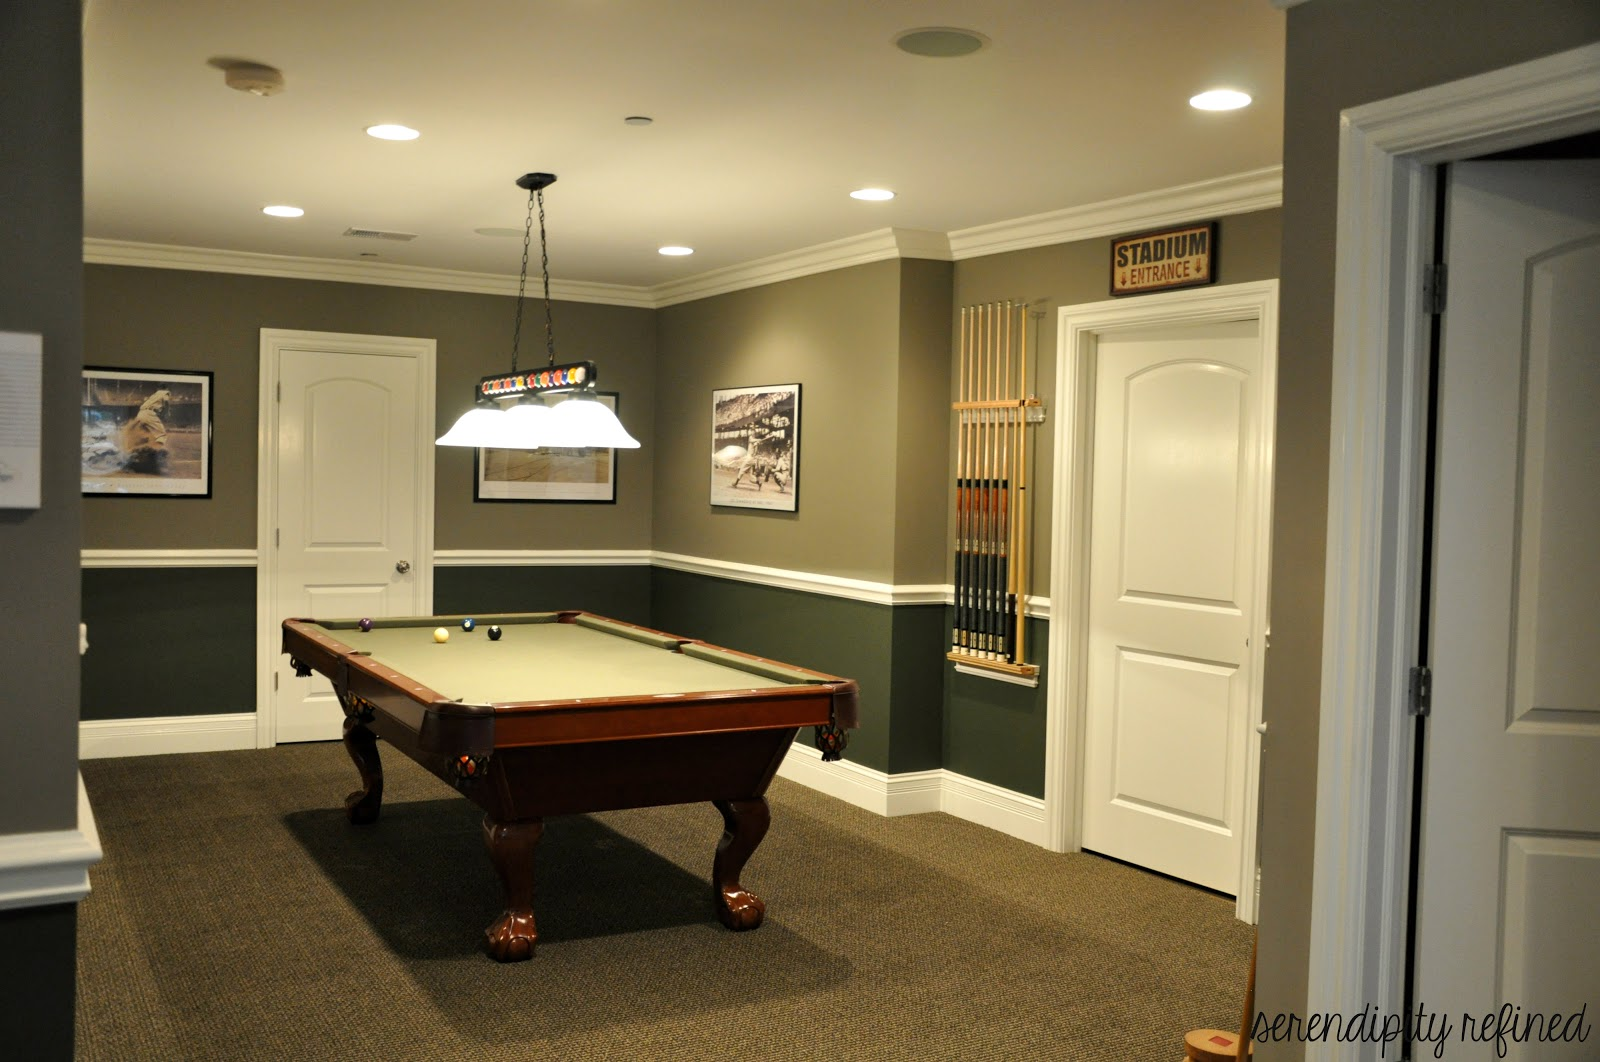 Serendipity Refined Blog: Basement Make Over Reveal and My ...